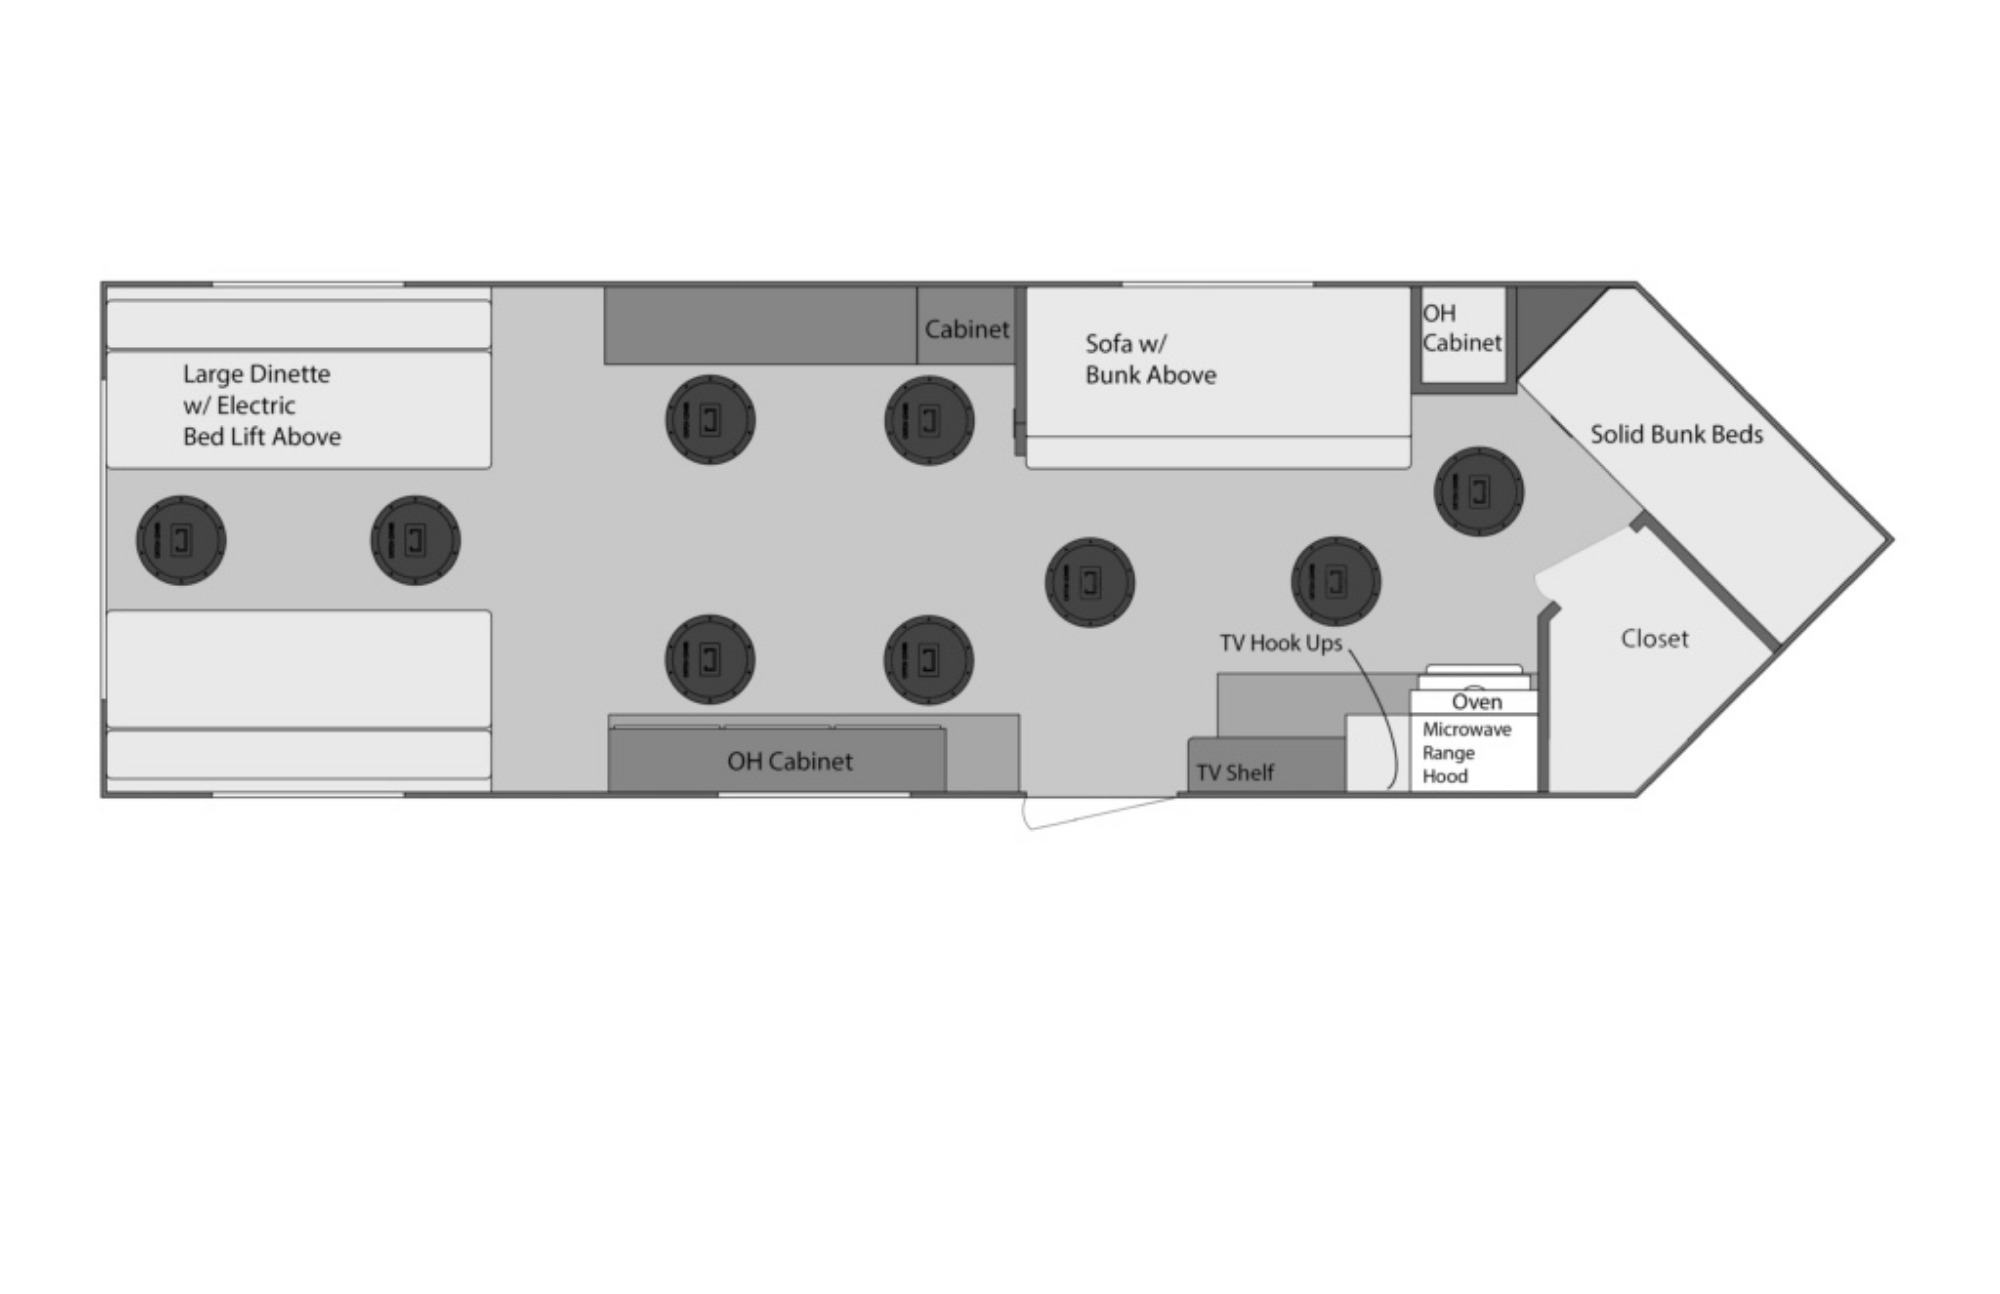 View Floor Plan for 2022 VOYAGER YETTI A824-PK